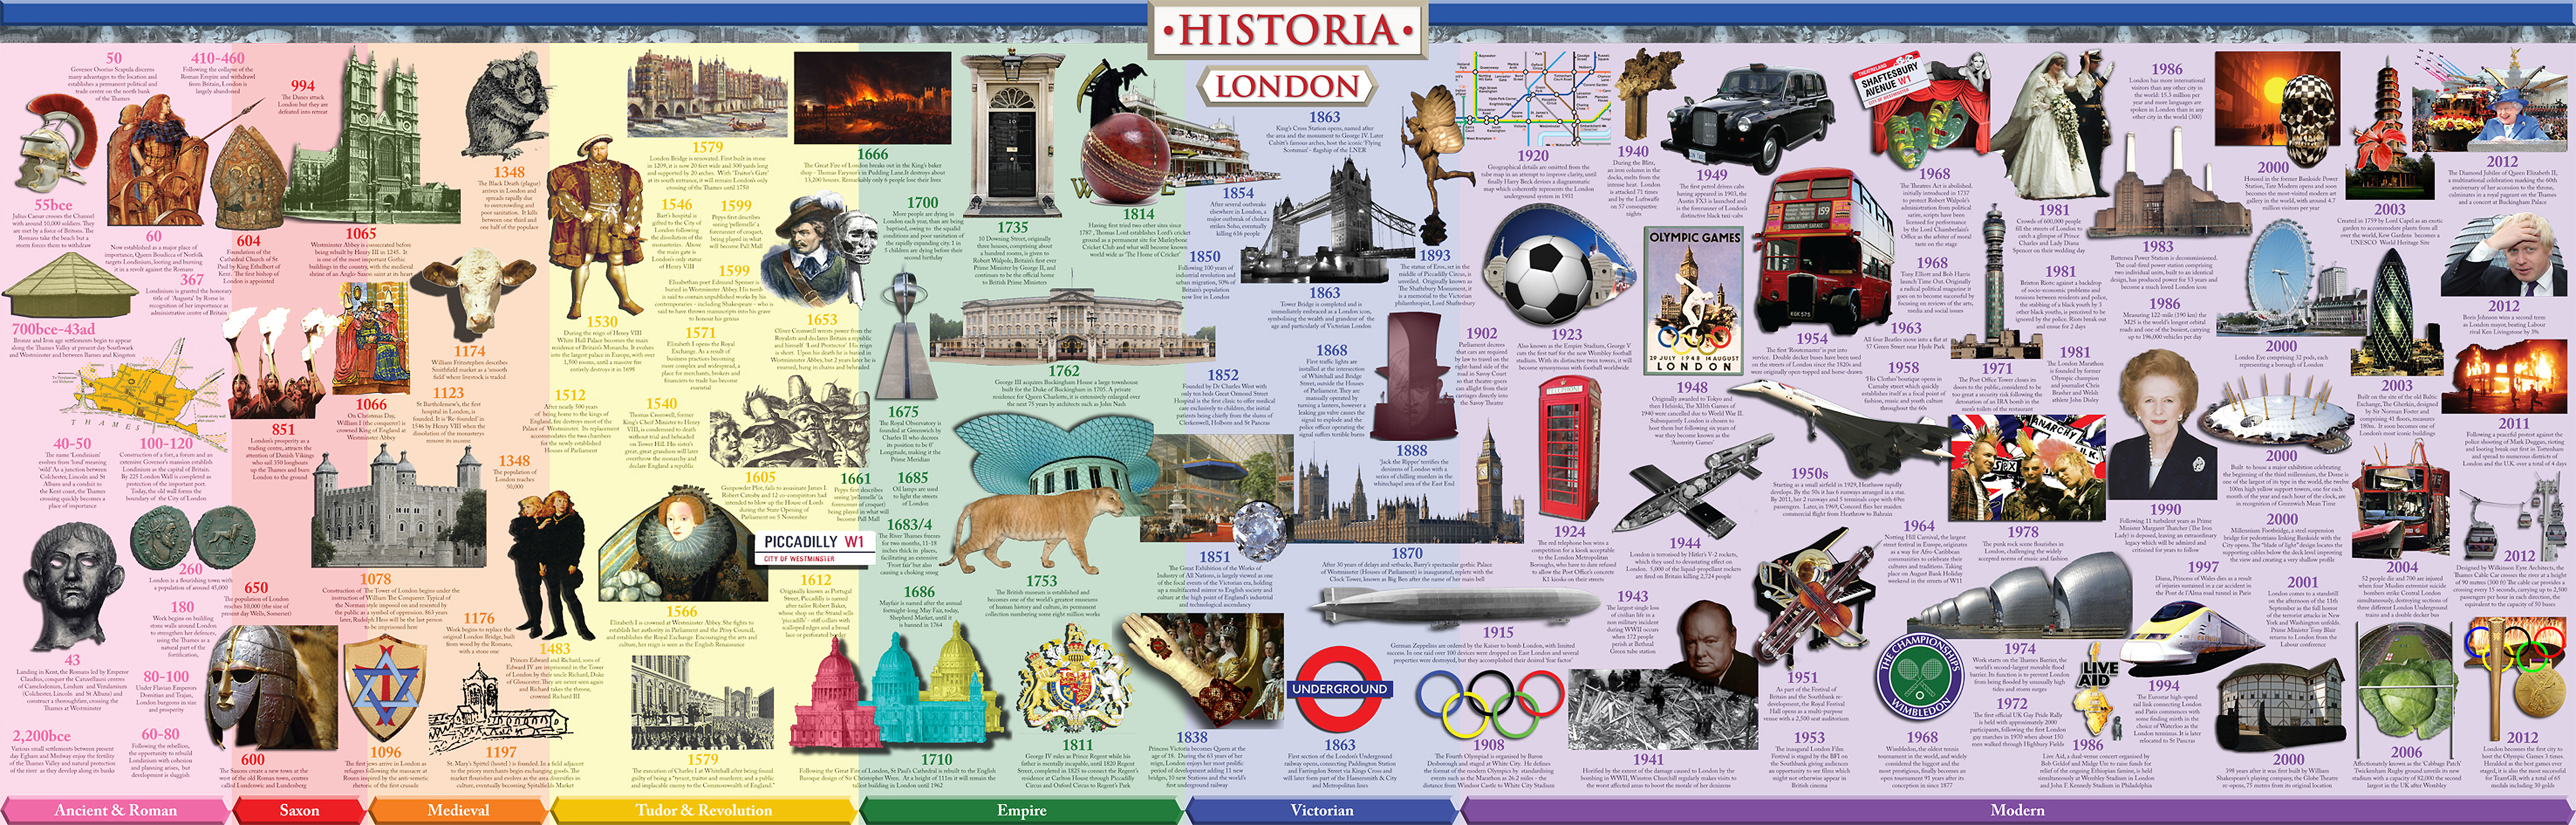 history about london: